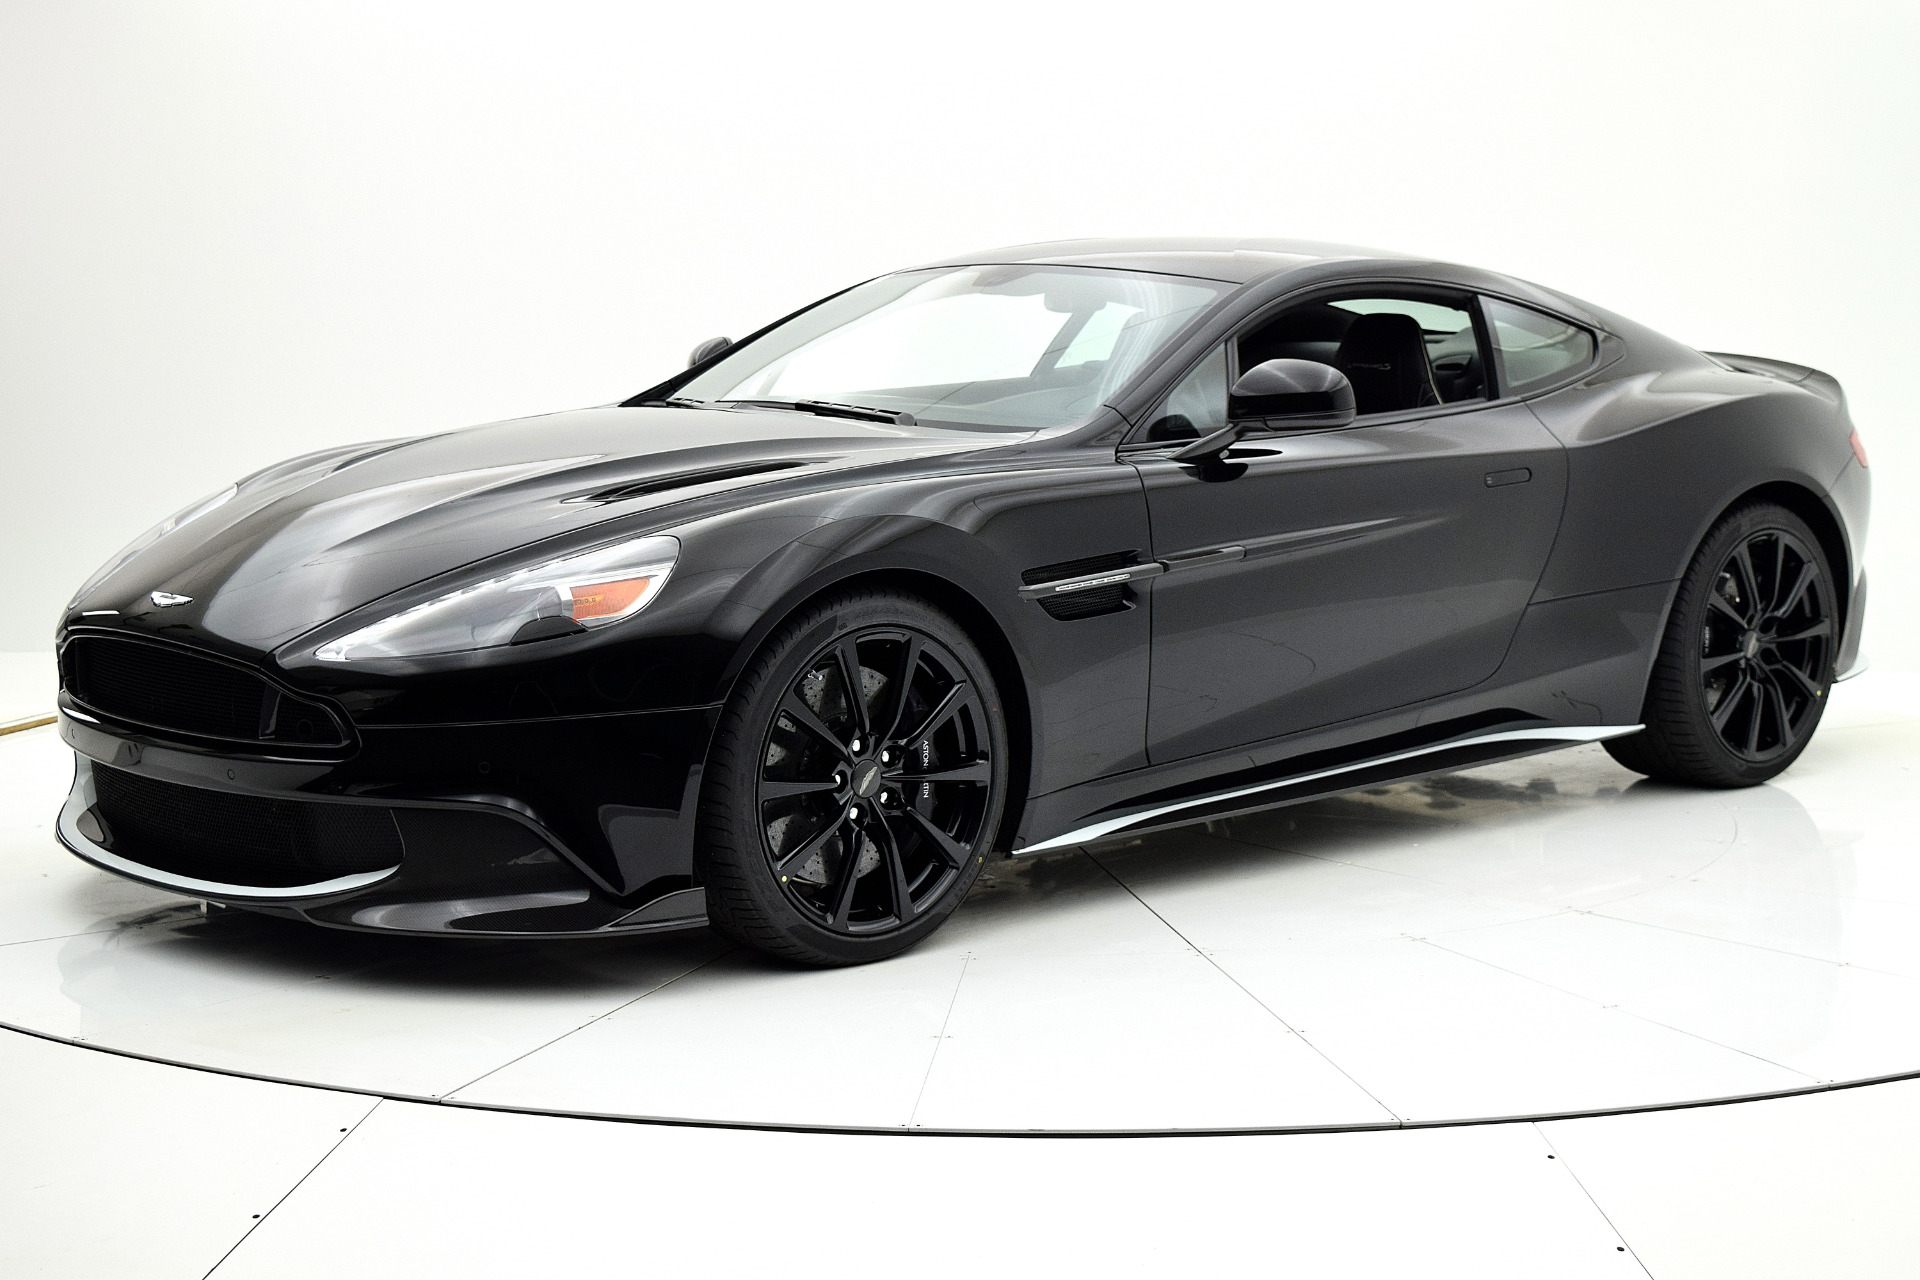 New 2018 Aston Martin Vanquish S Coupe For Sale 330 224 F C Kerbeck Aston Martin Stock 18a101